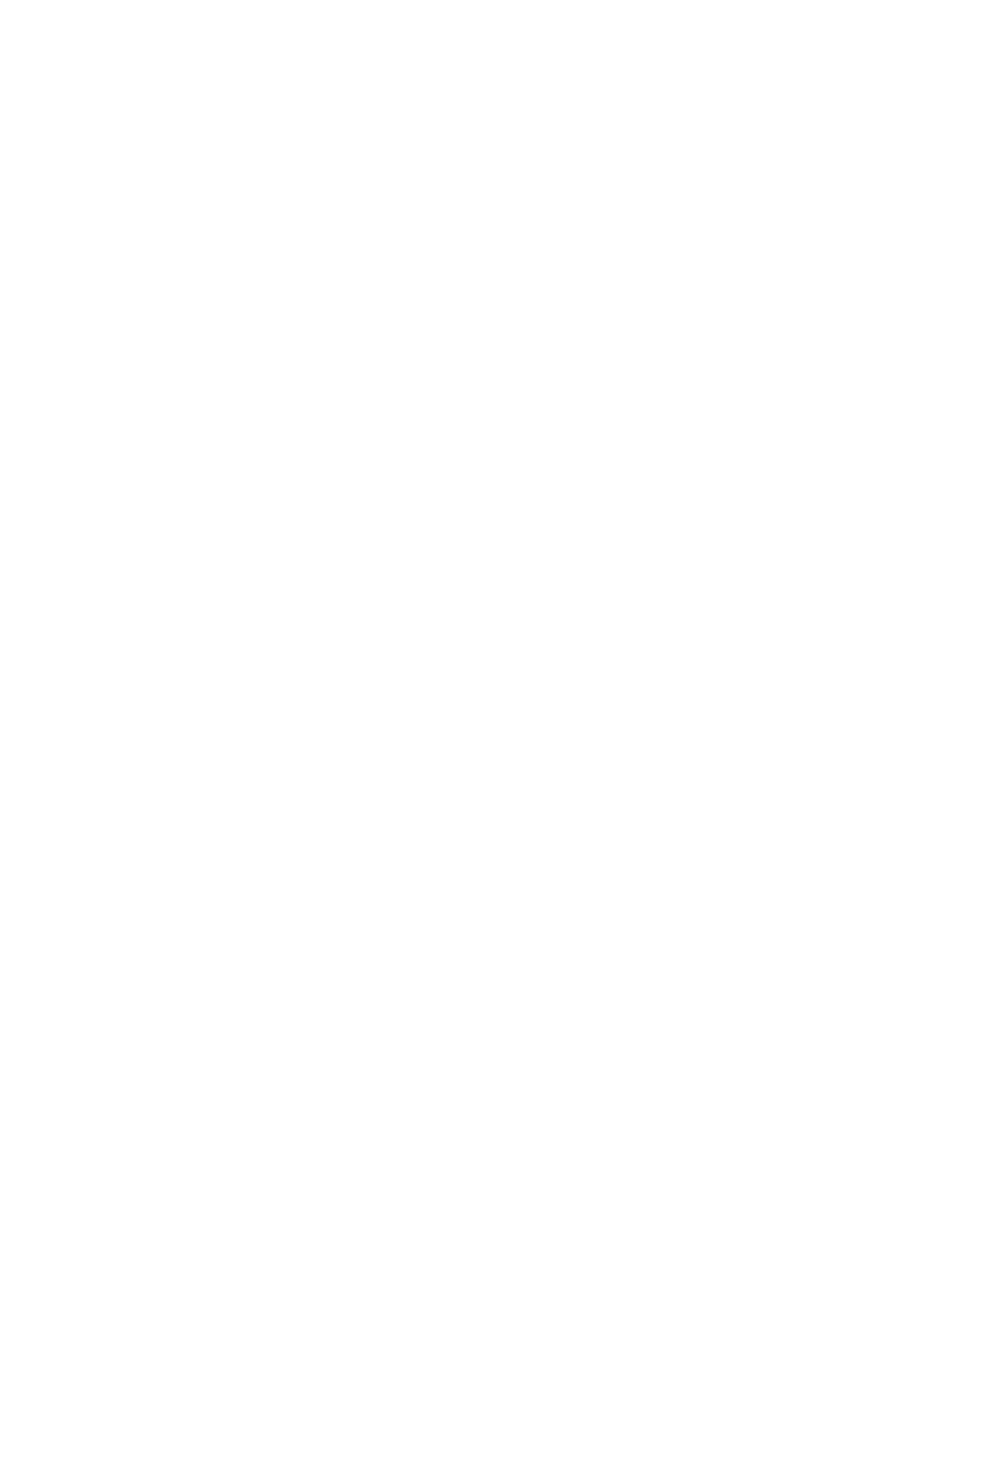 Vagabond Dog Presents Logo (White).png